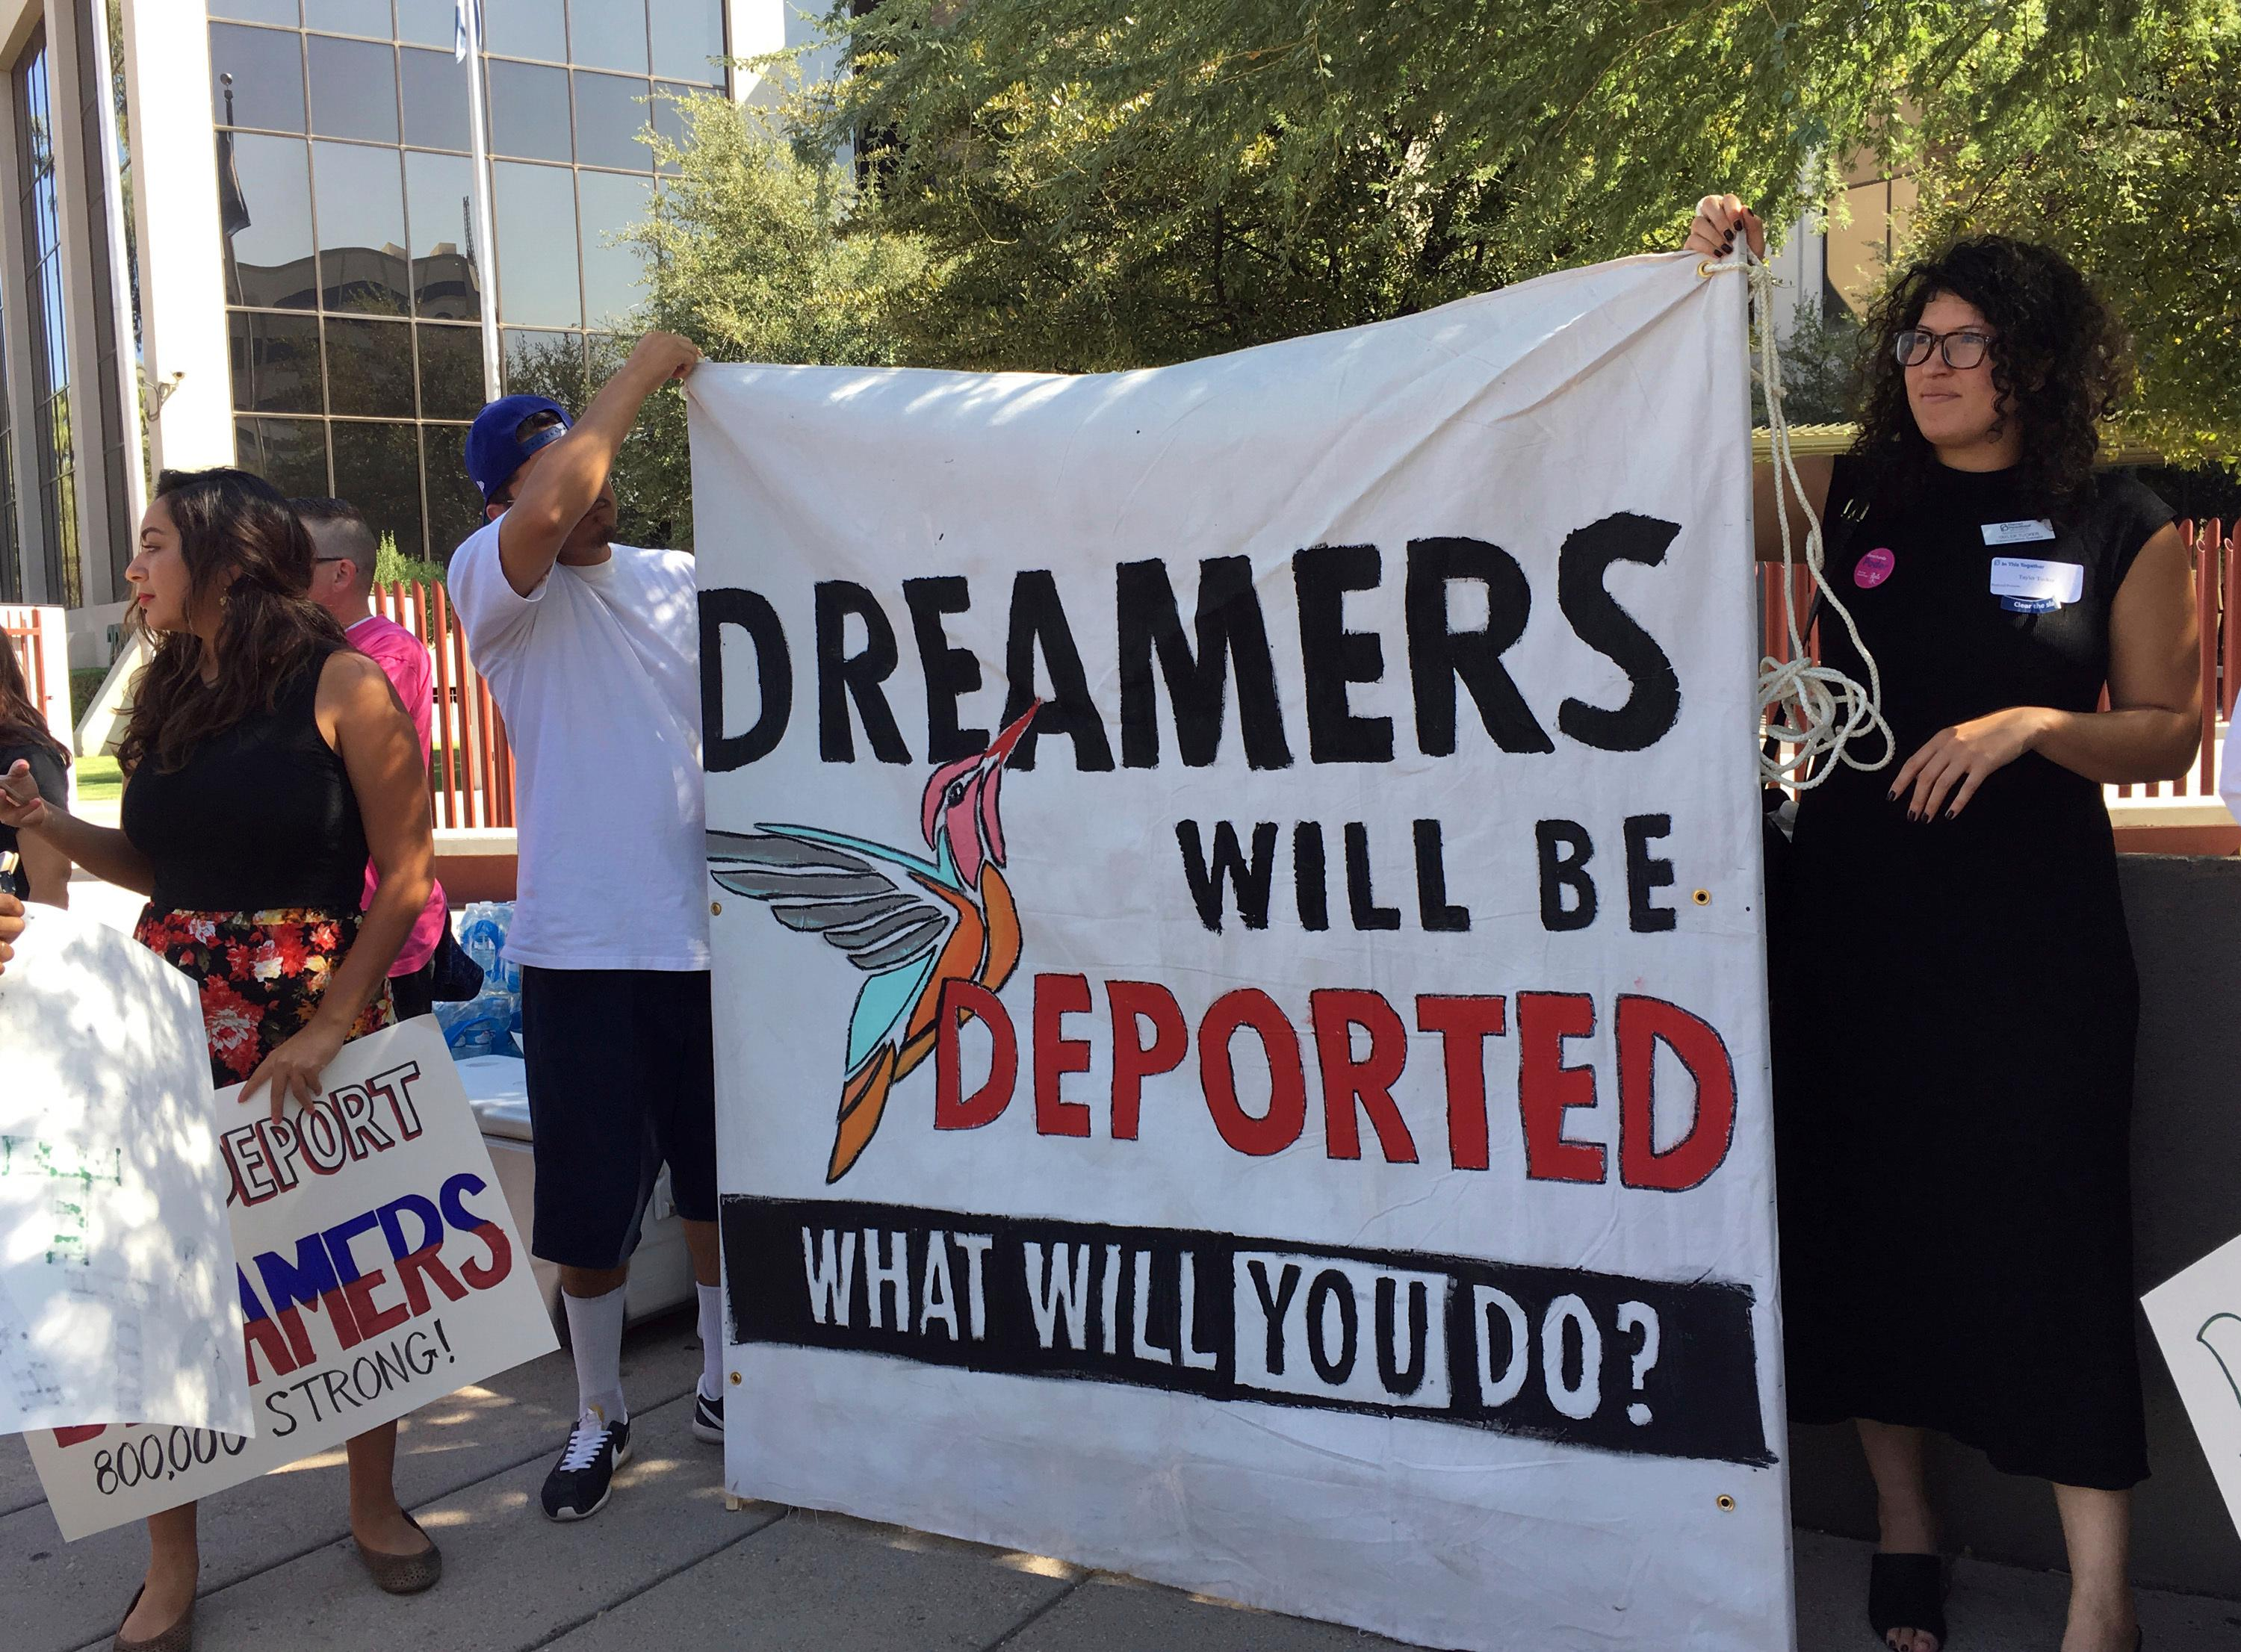 Immigrant rights groups, advocating for DACA, the program that allows youths who were brought to the country illegally as children to legally work and be shielded from deportation, rally in Phoenix, Ariz., Monday, Aug. 28, 2017.{&amp;nbsp;} (AP Photo/Astrid Galvan)<p></p>